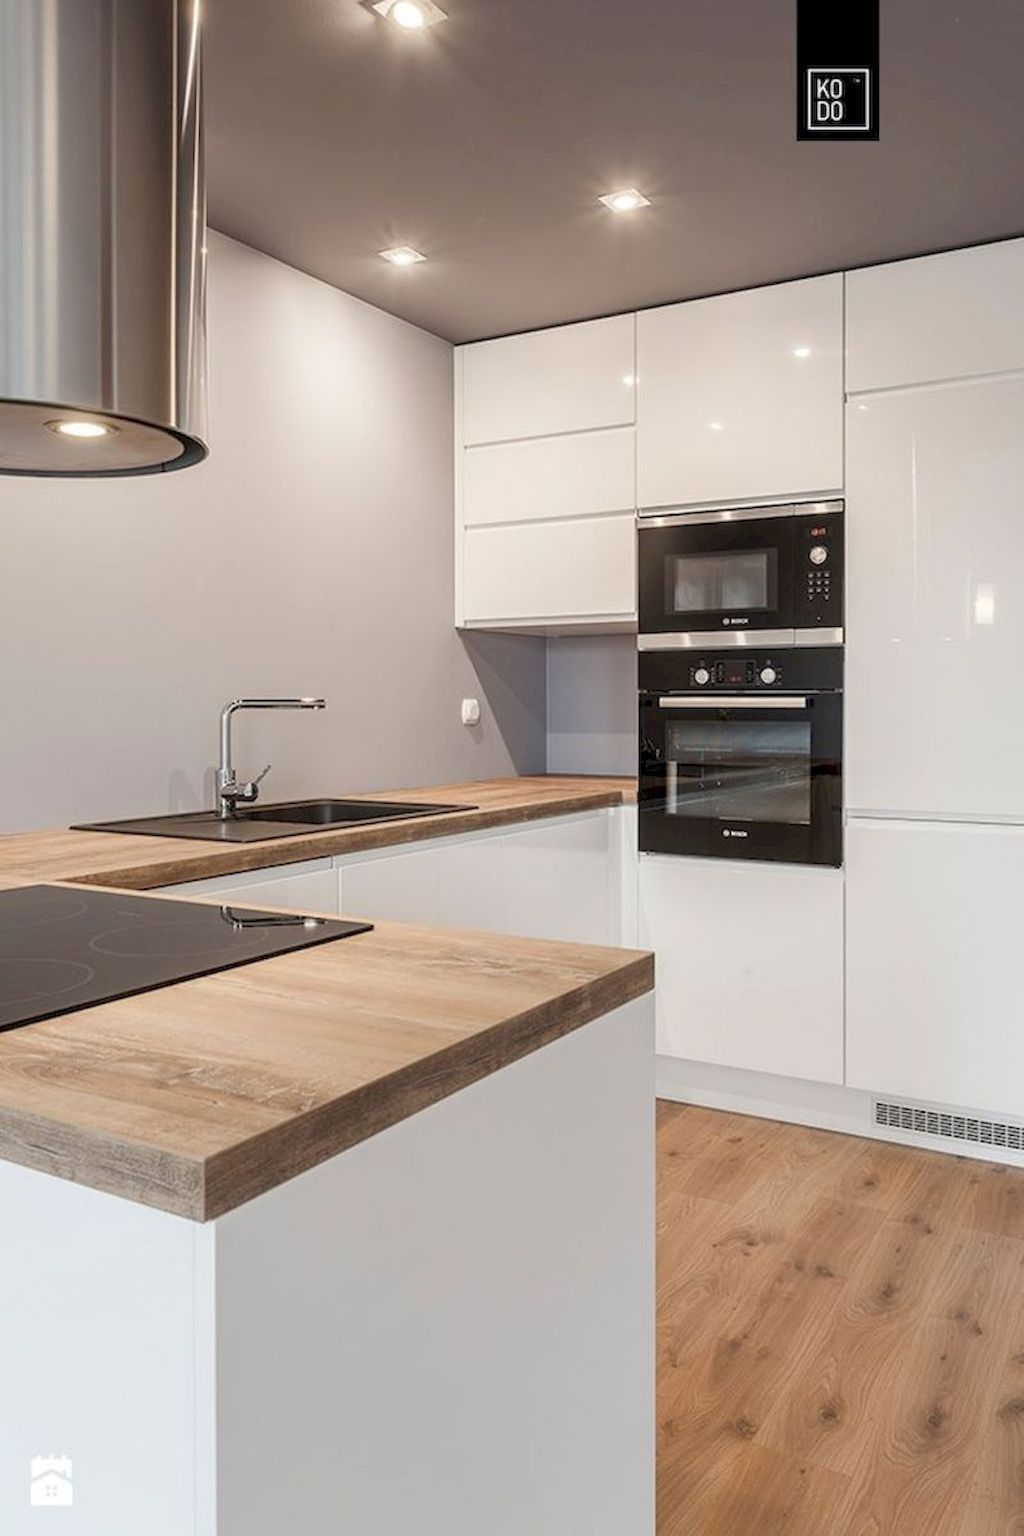 small apartment kitchen ideas on a budget 23 projekty kuchni nowoczesne projekty kuchni on kitchen ideas on a budget id=14554